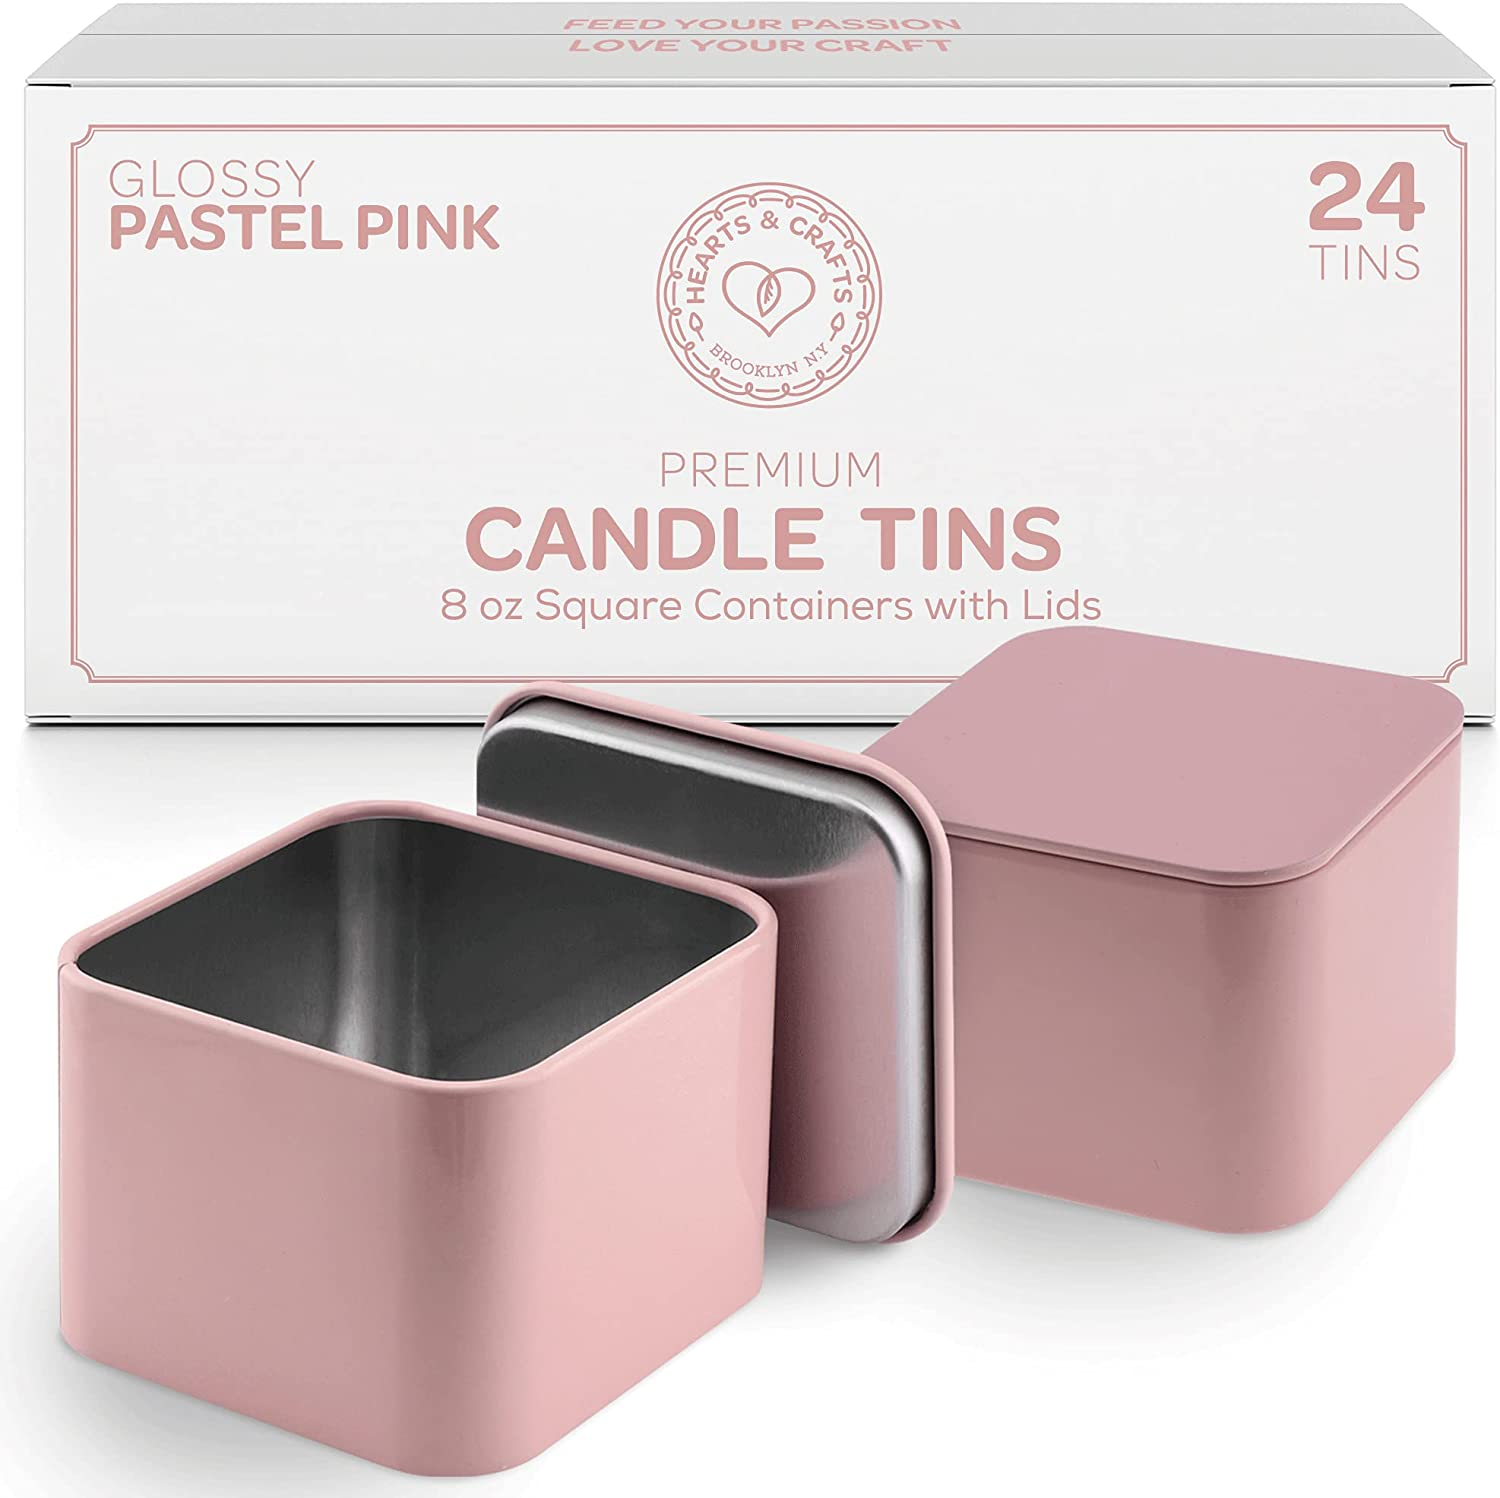 8oz Pastel Pink Tin Cans with Seam – 24 Count